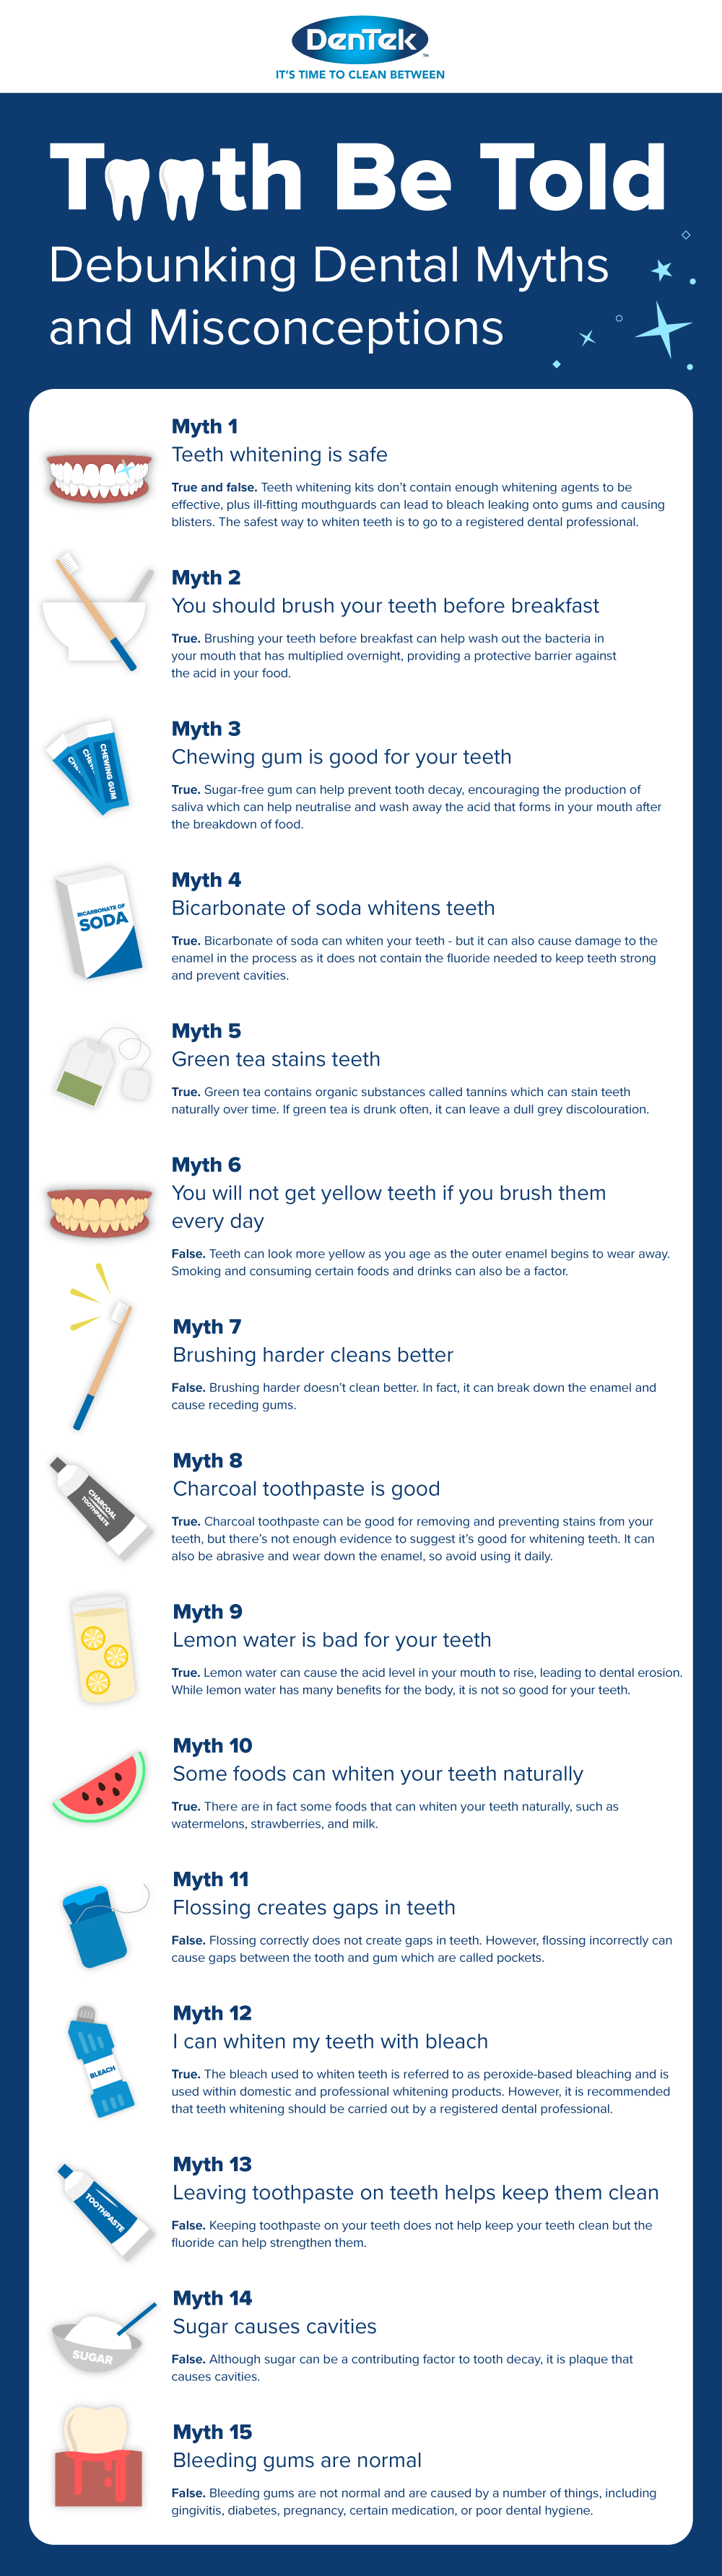 Tooth be told debunking 15 dental myths